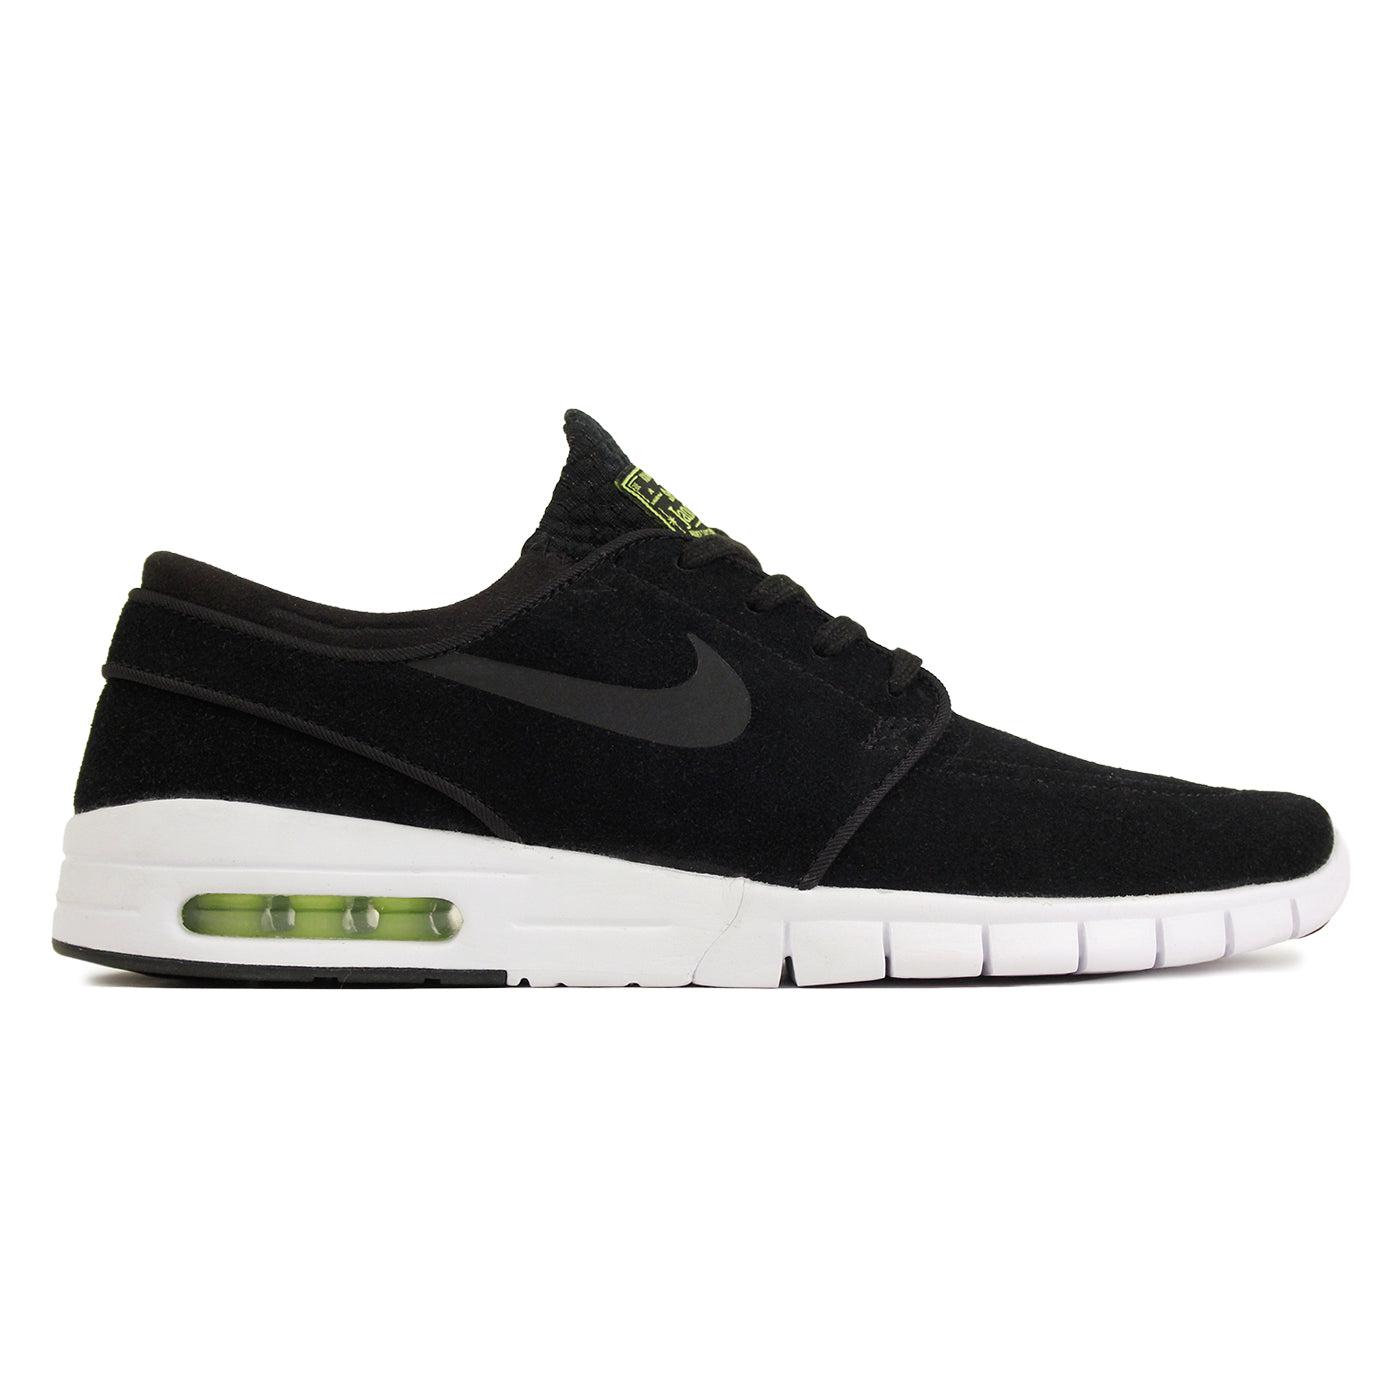 buy popular 865df acb54 Nike SB Stefan Janoski Max L Shoes - Black   Black   Cyber   White